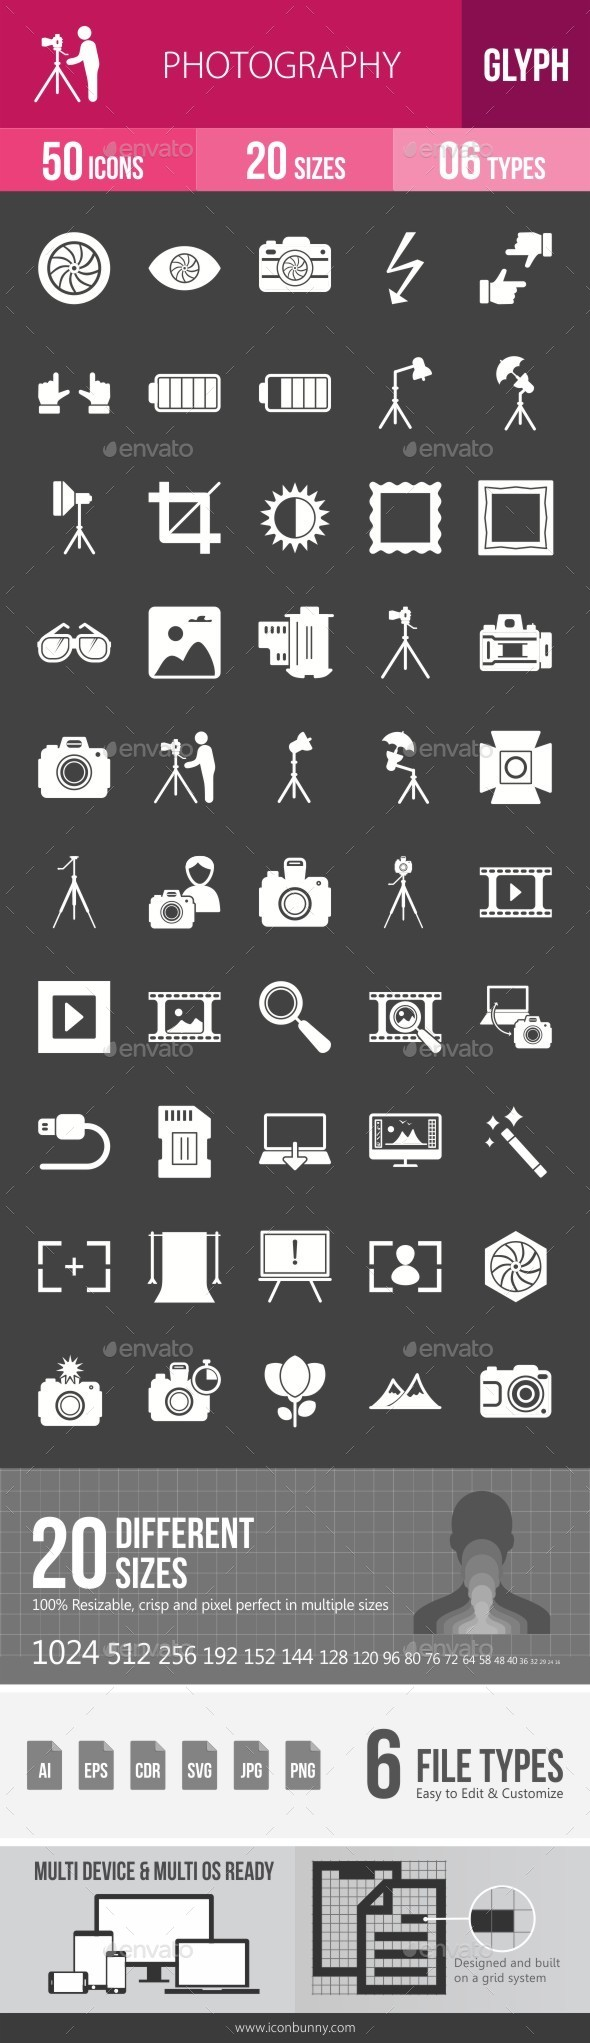 Photography Glyph Inverted Icons - Icons